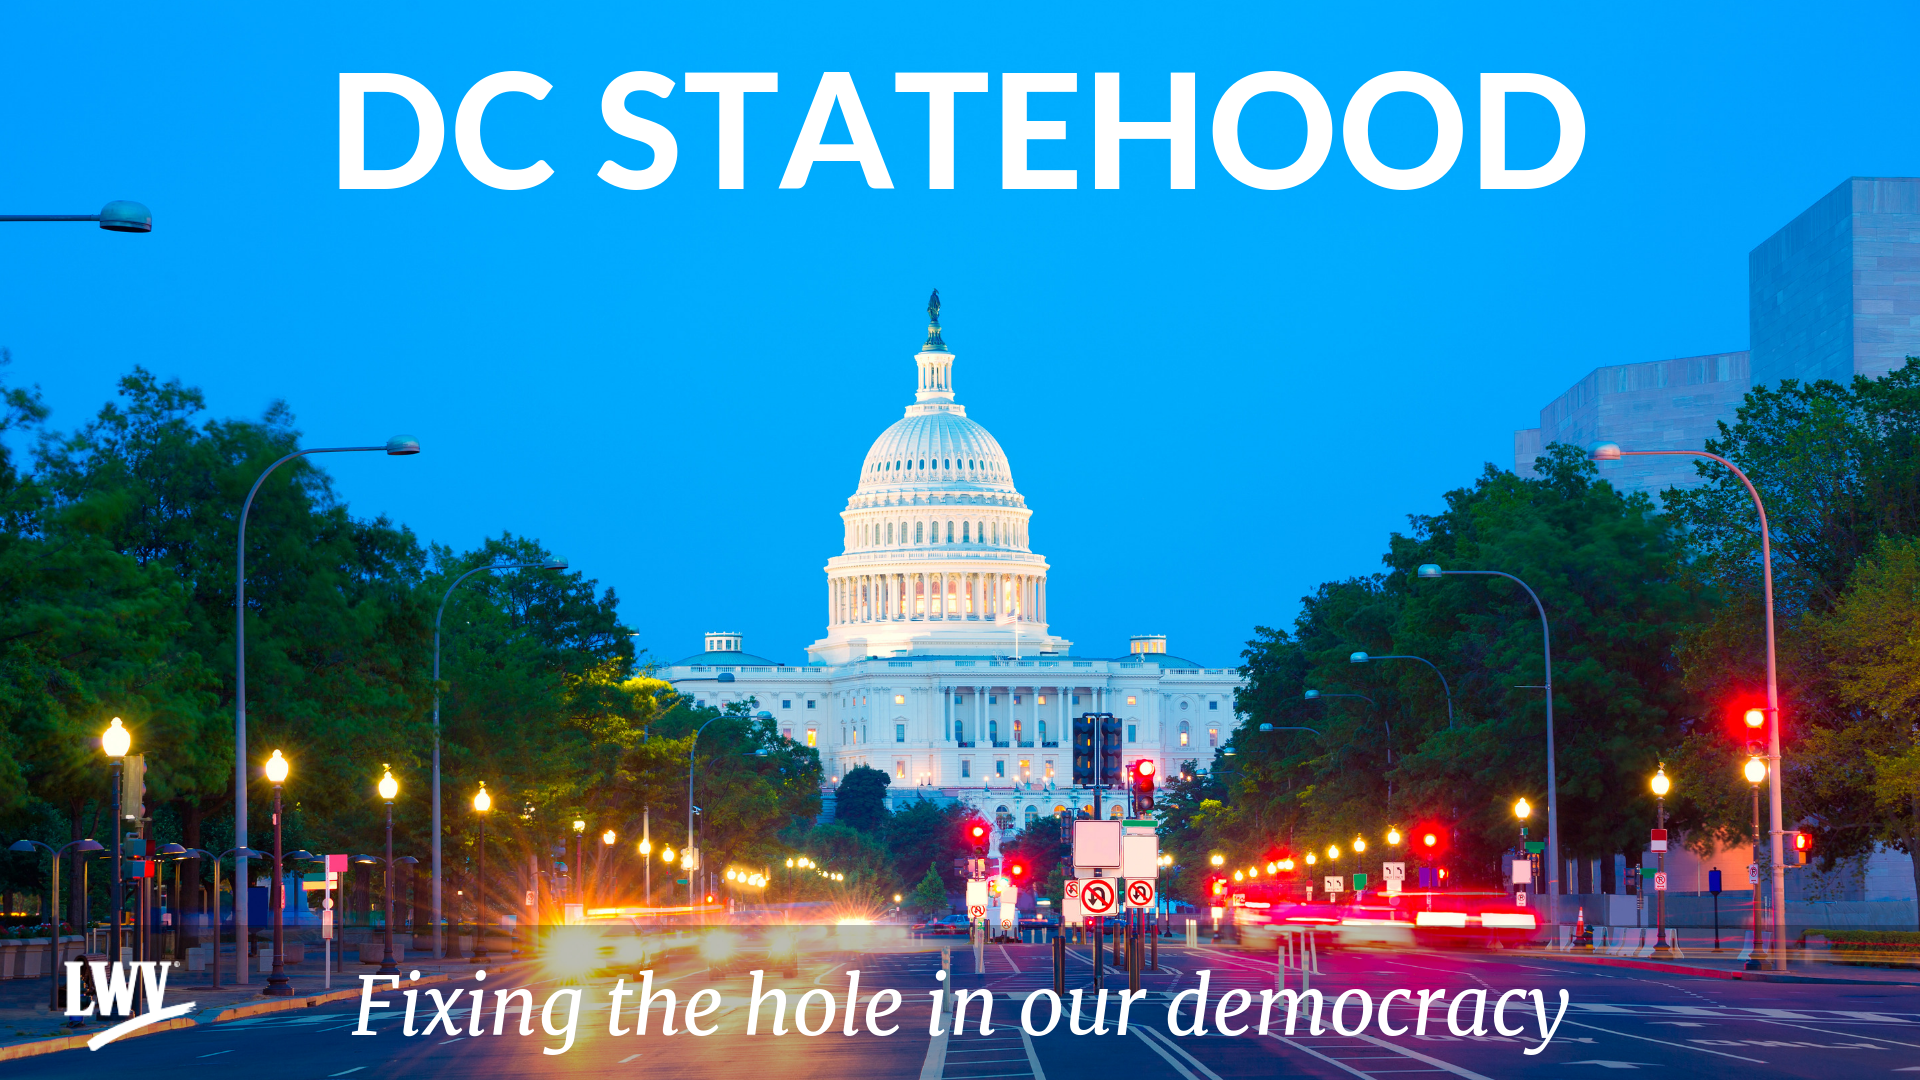 DC Statehood photo for a Facebook Event. - Facebook Events have different size requirements than a general Facebook post. If you are hosting us for a presentation or holding one of your own, this image should work well for your Event Page.Right click to save the image.